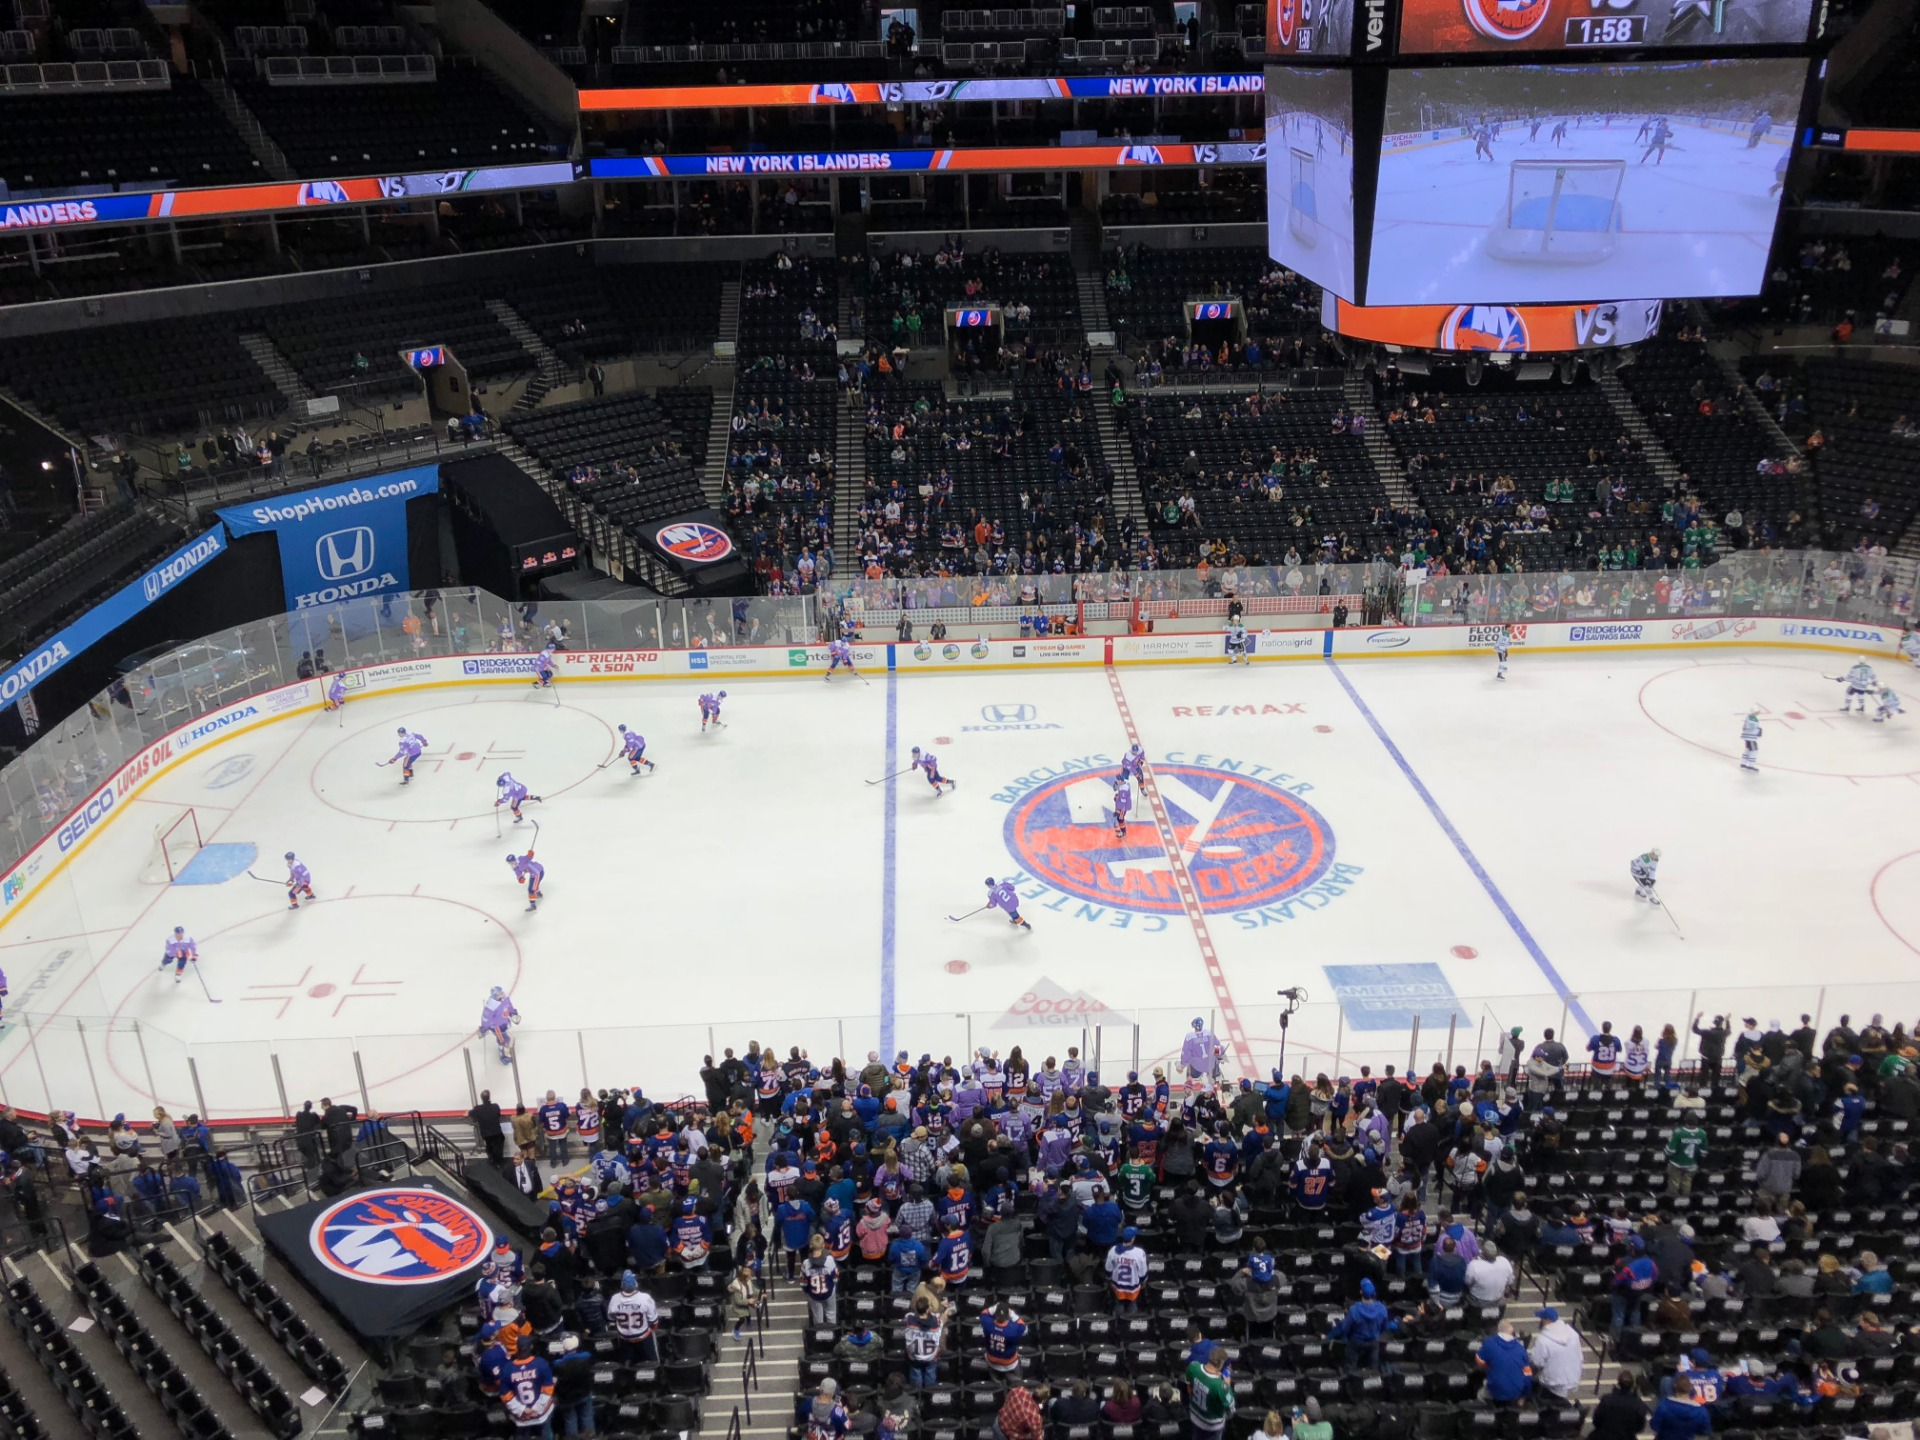 Barclays Center Section 226 Row 2 Seat 7